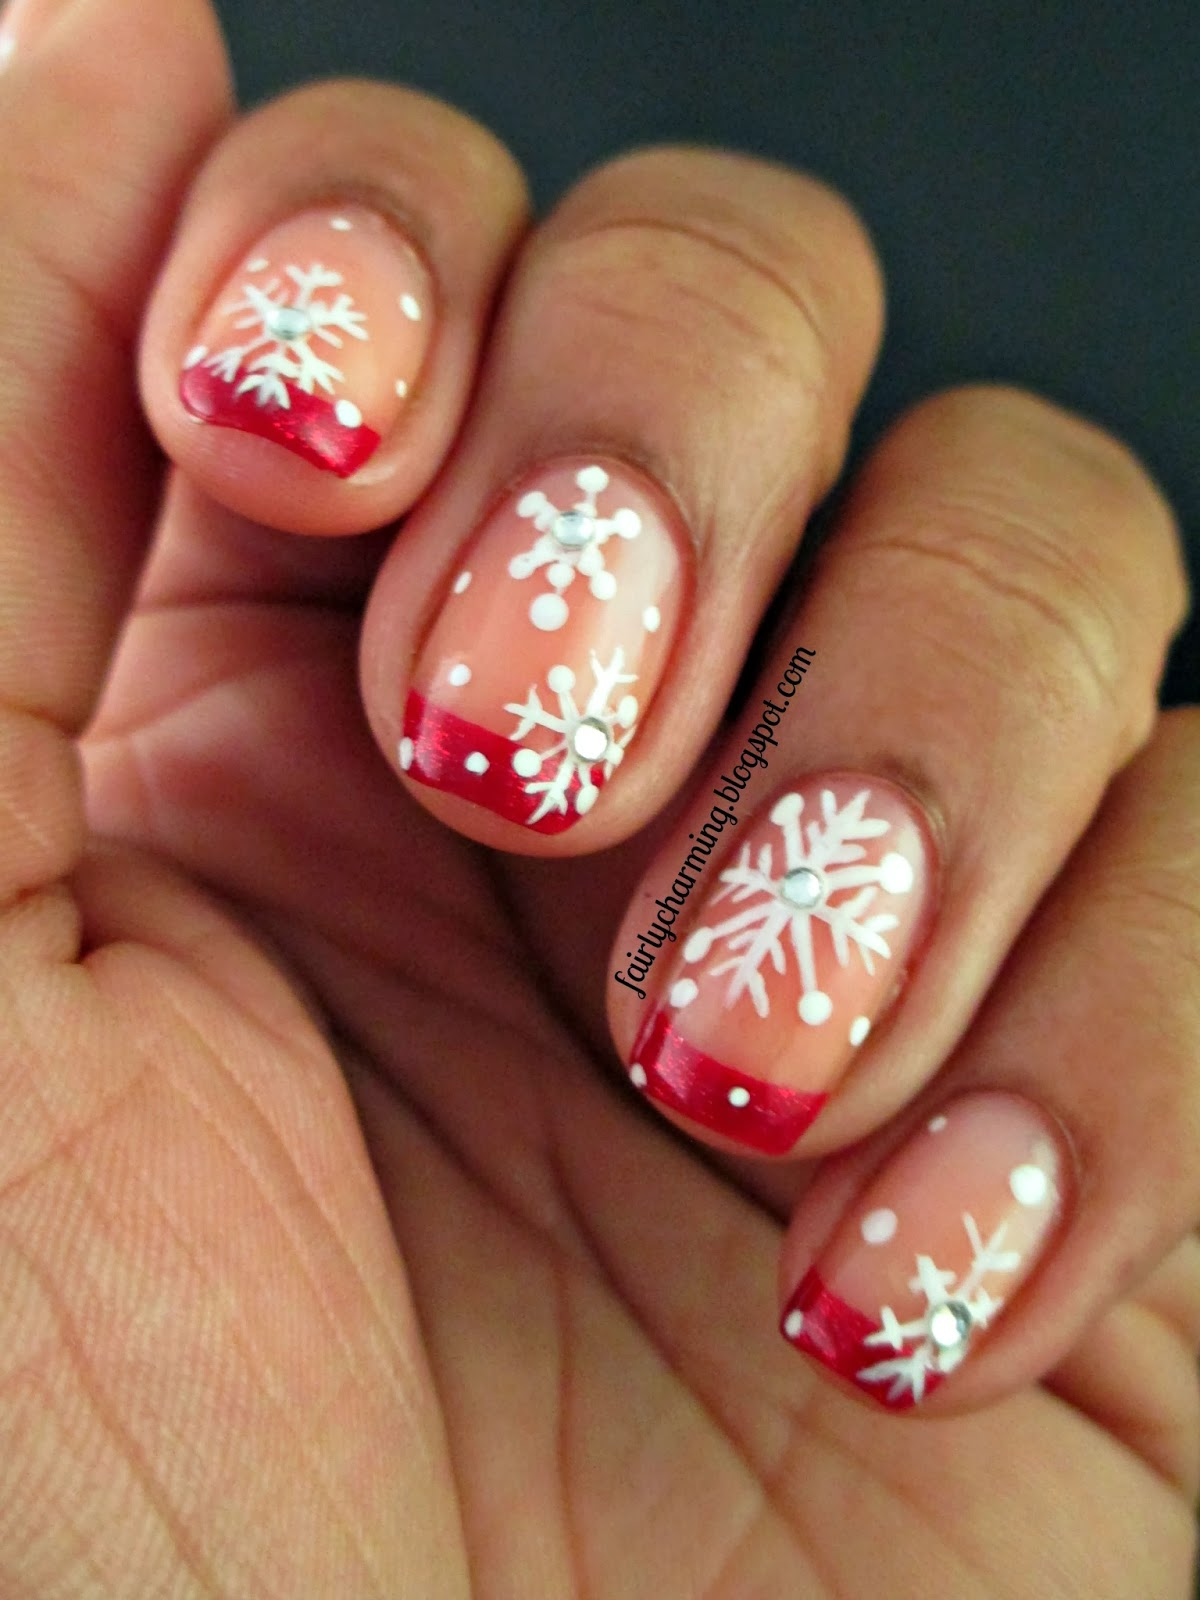 Fairly Charming: Snowflakies